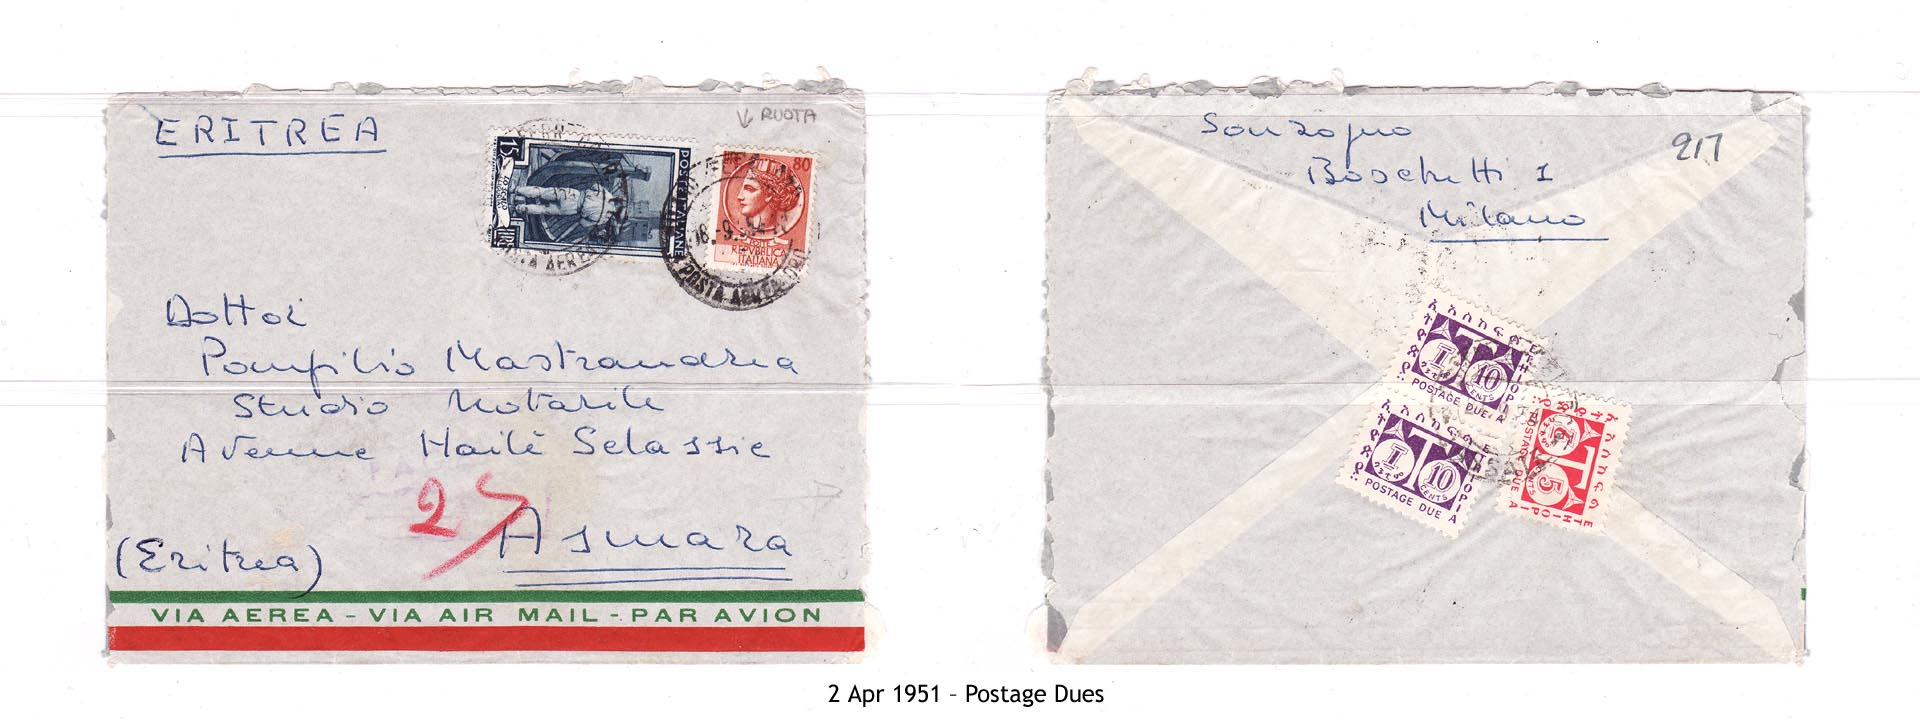 19510402 – Postage Dues